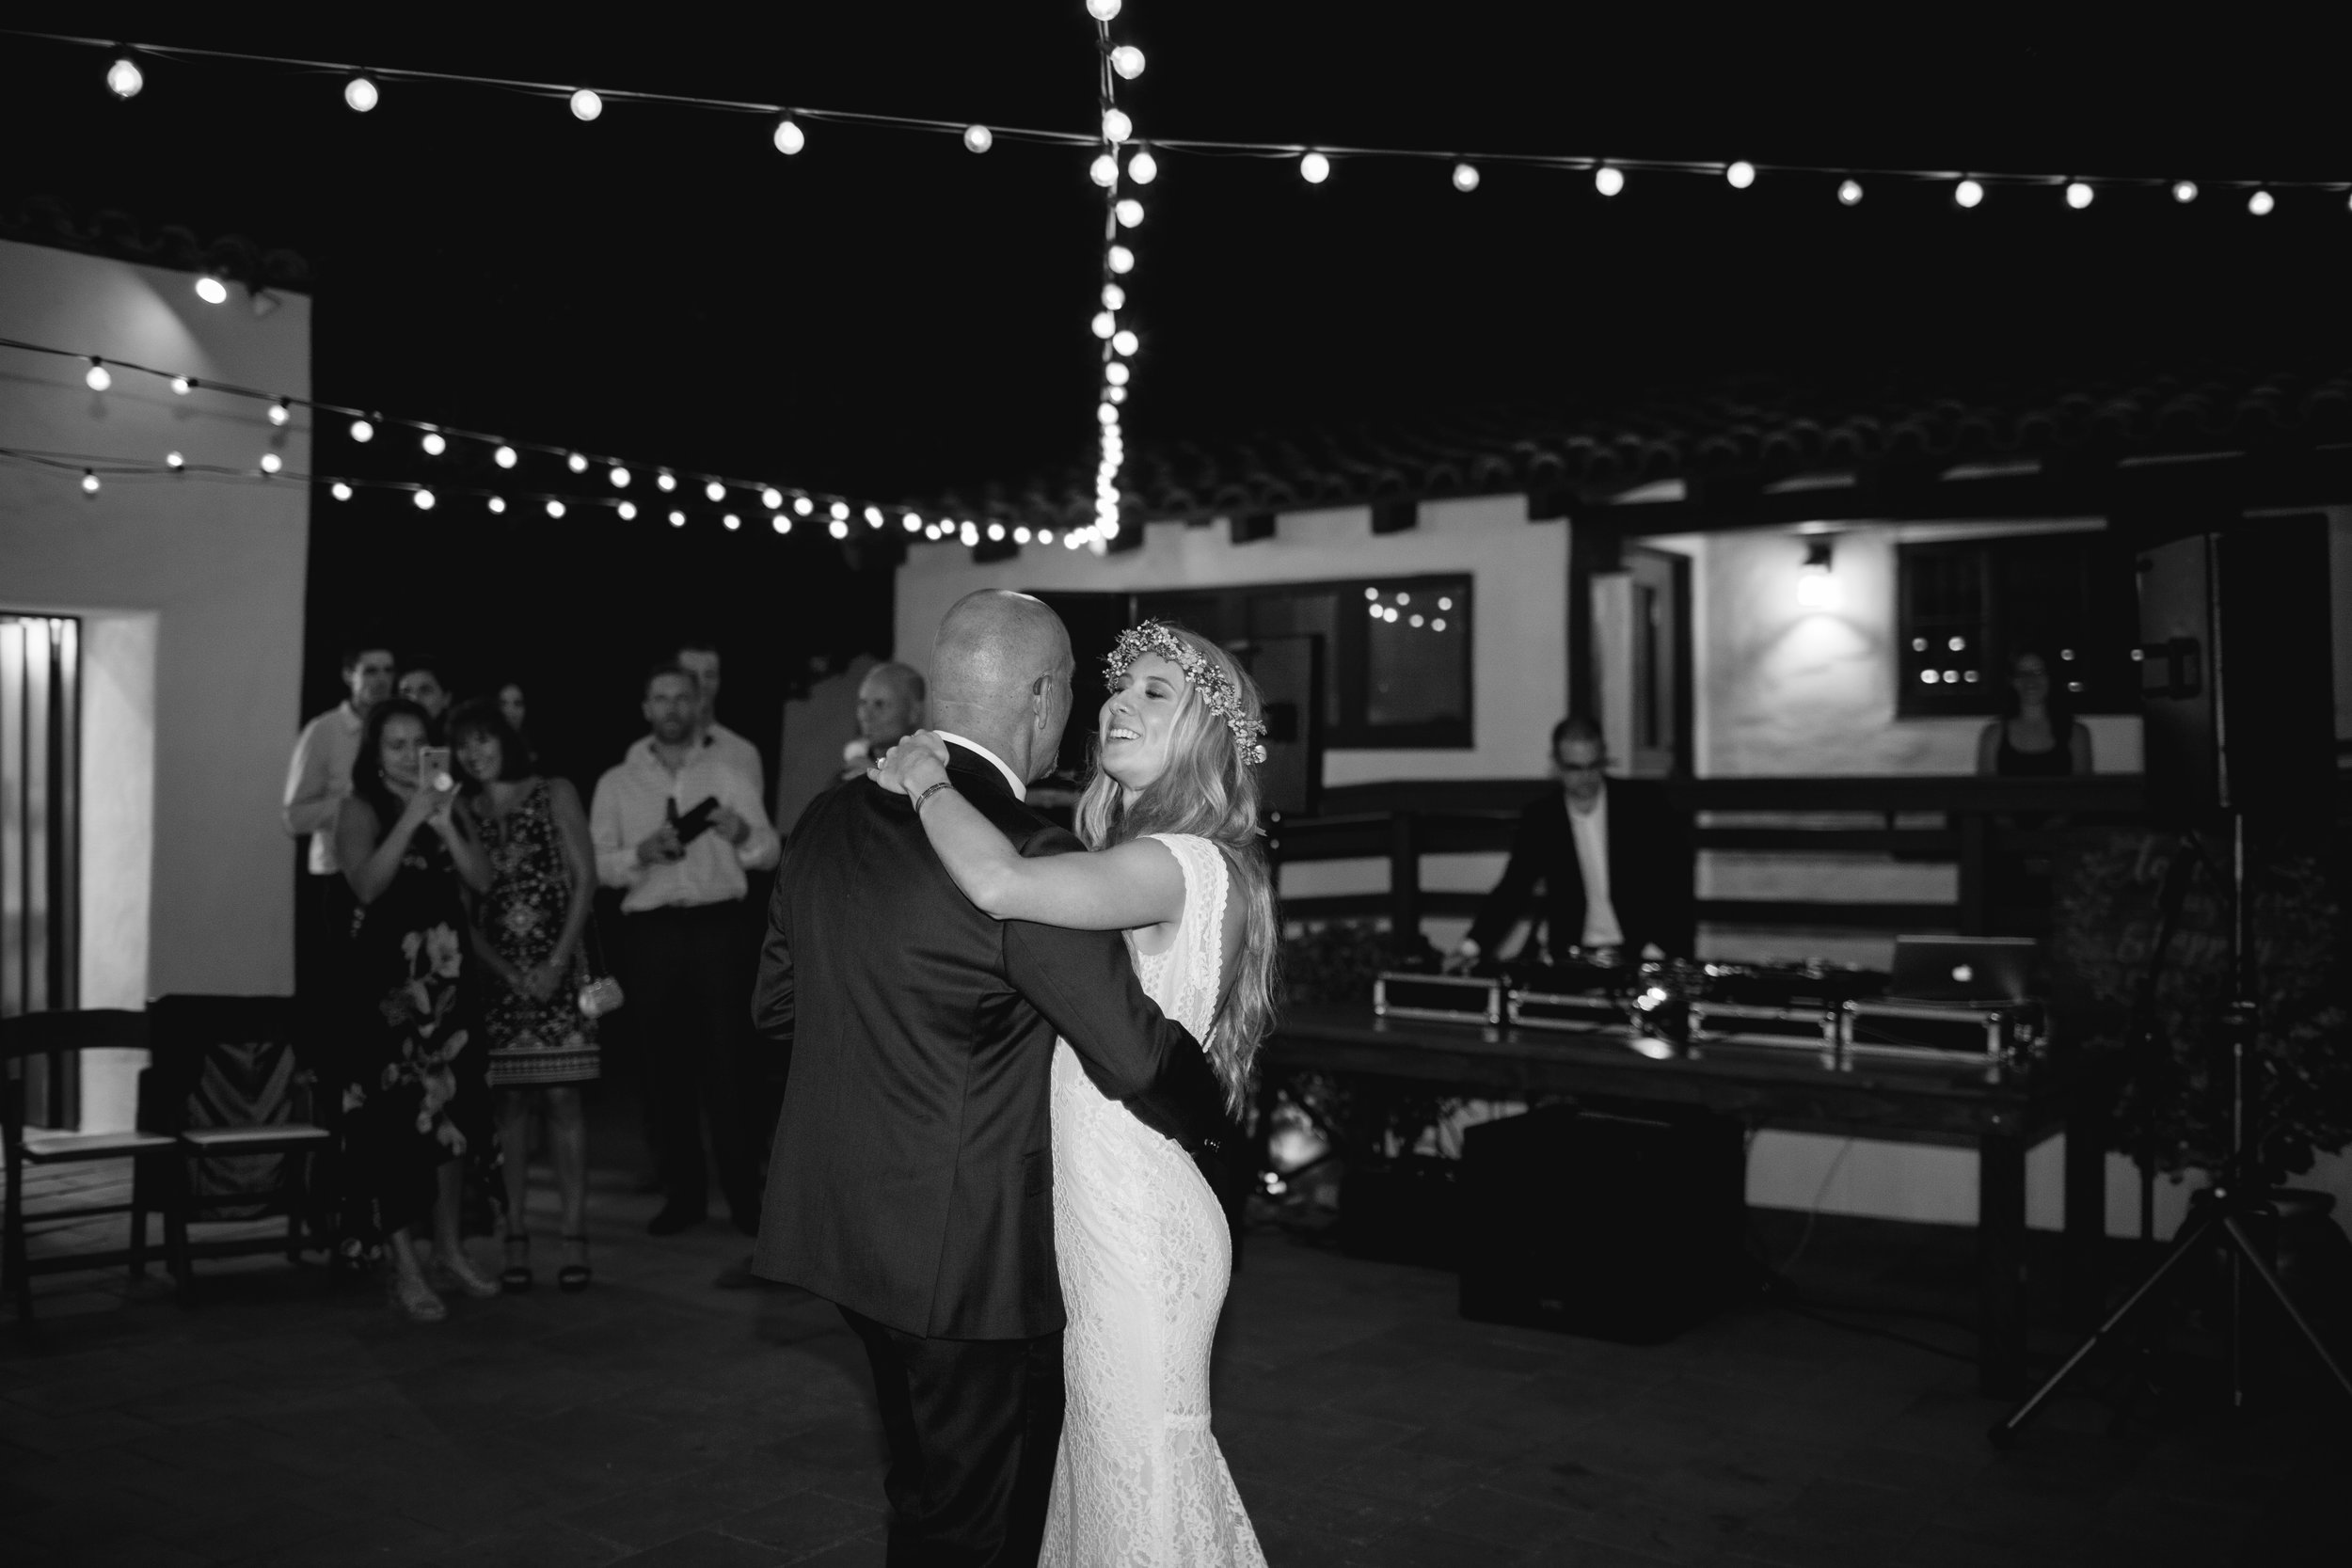 jamie+shaun (803 of 871).jpg